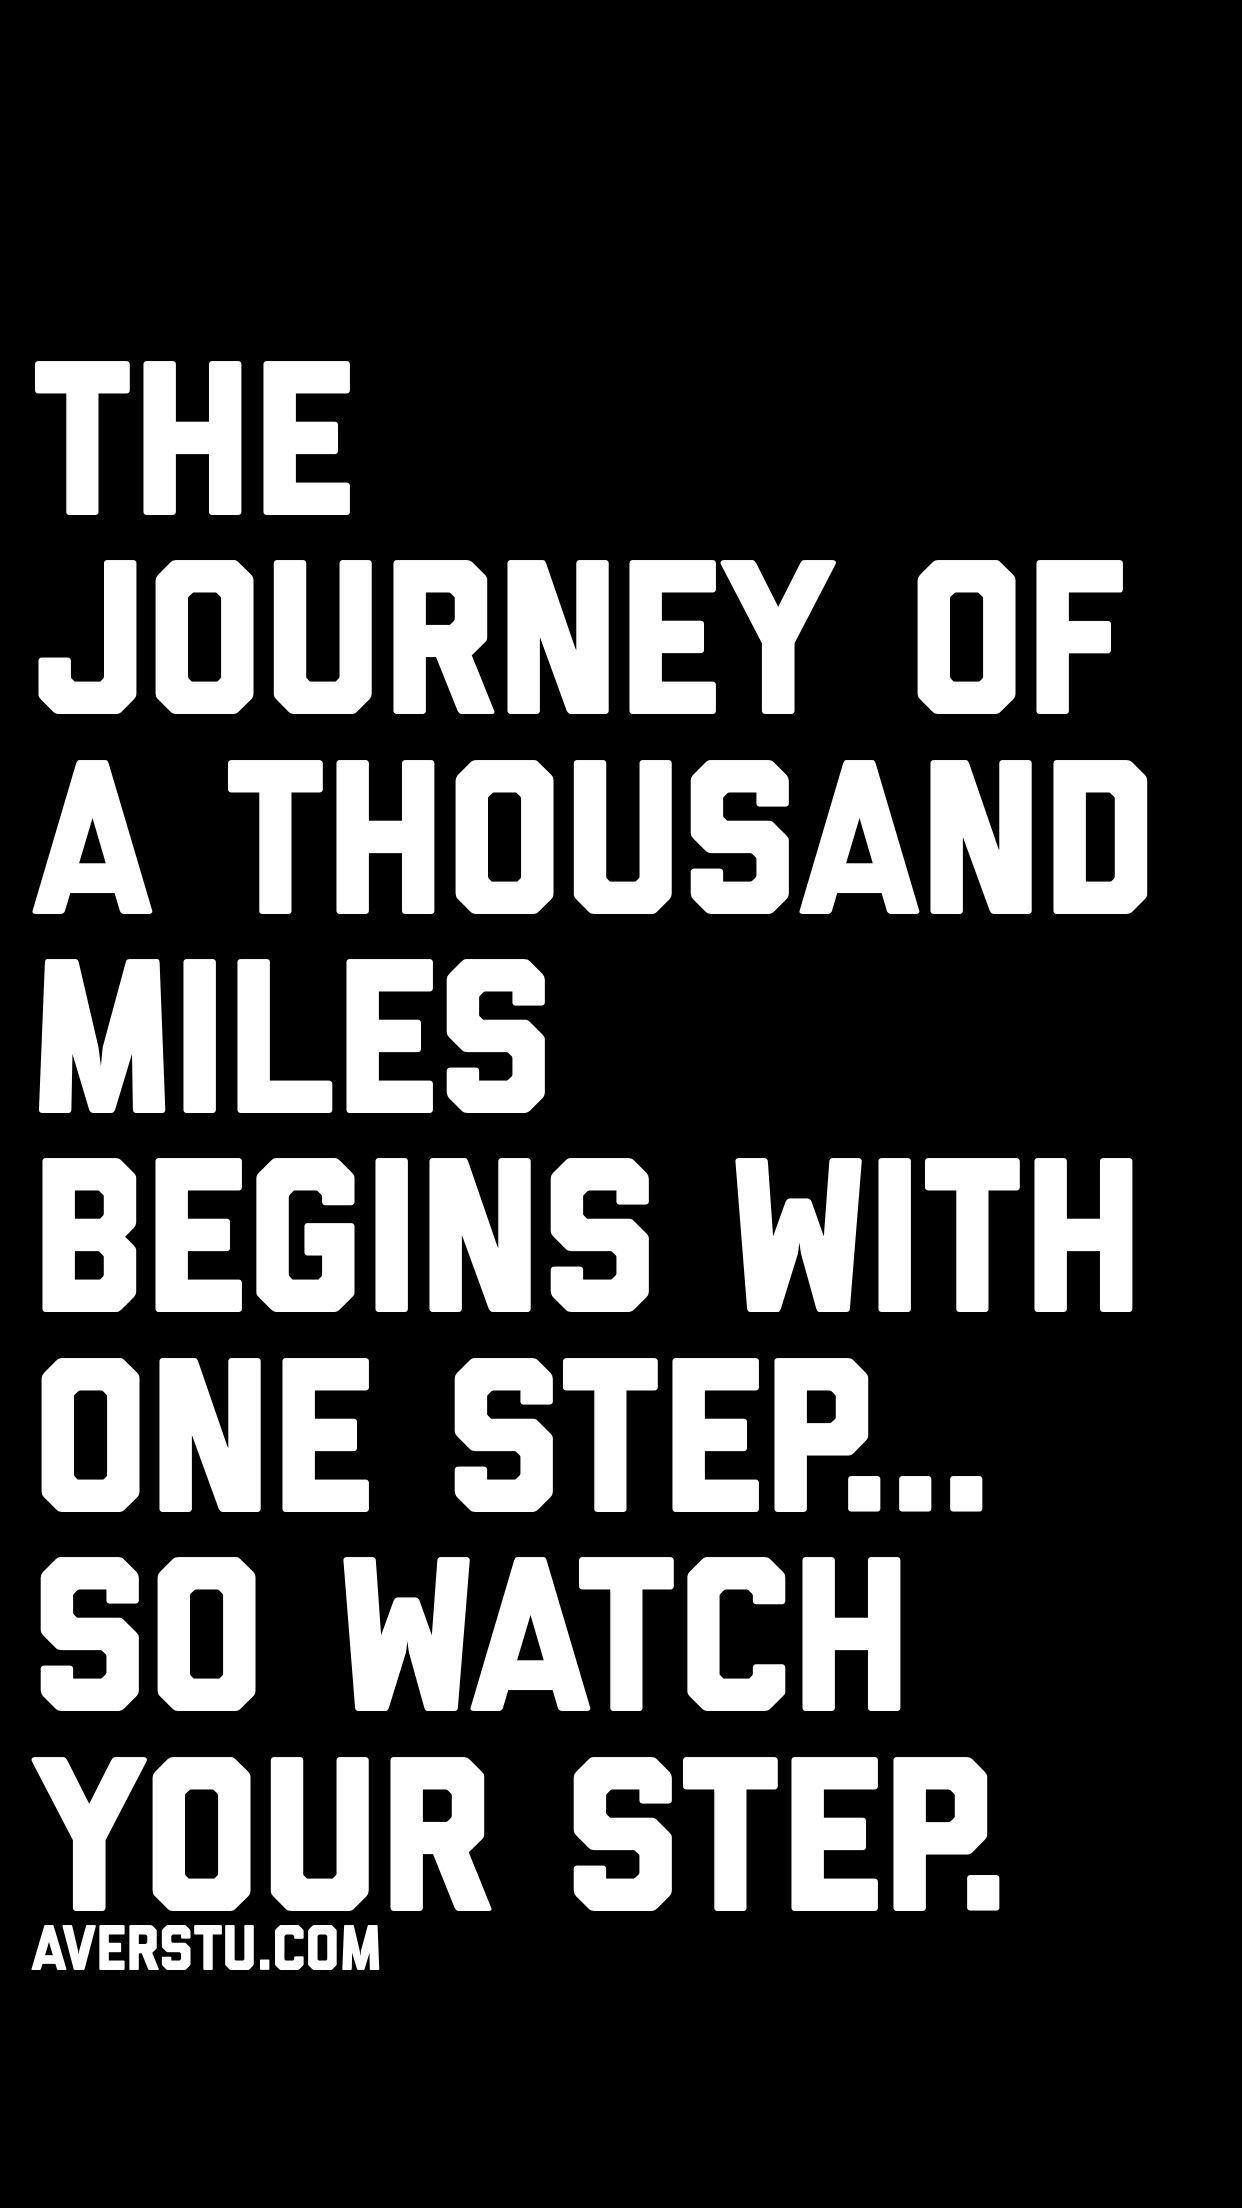 The Journey Of A Thousand Miles Begins With One Step So Watch